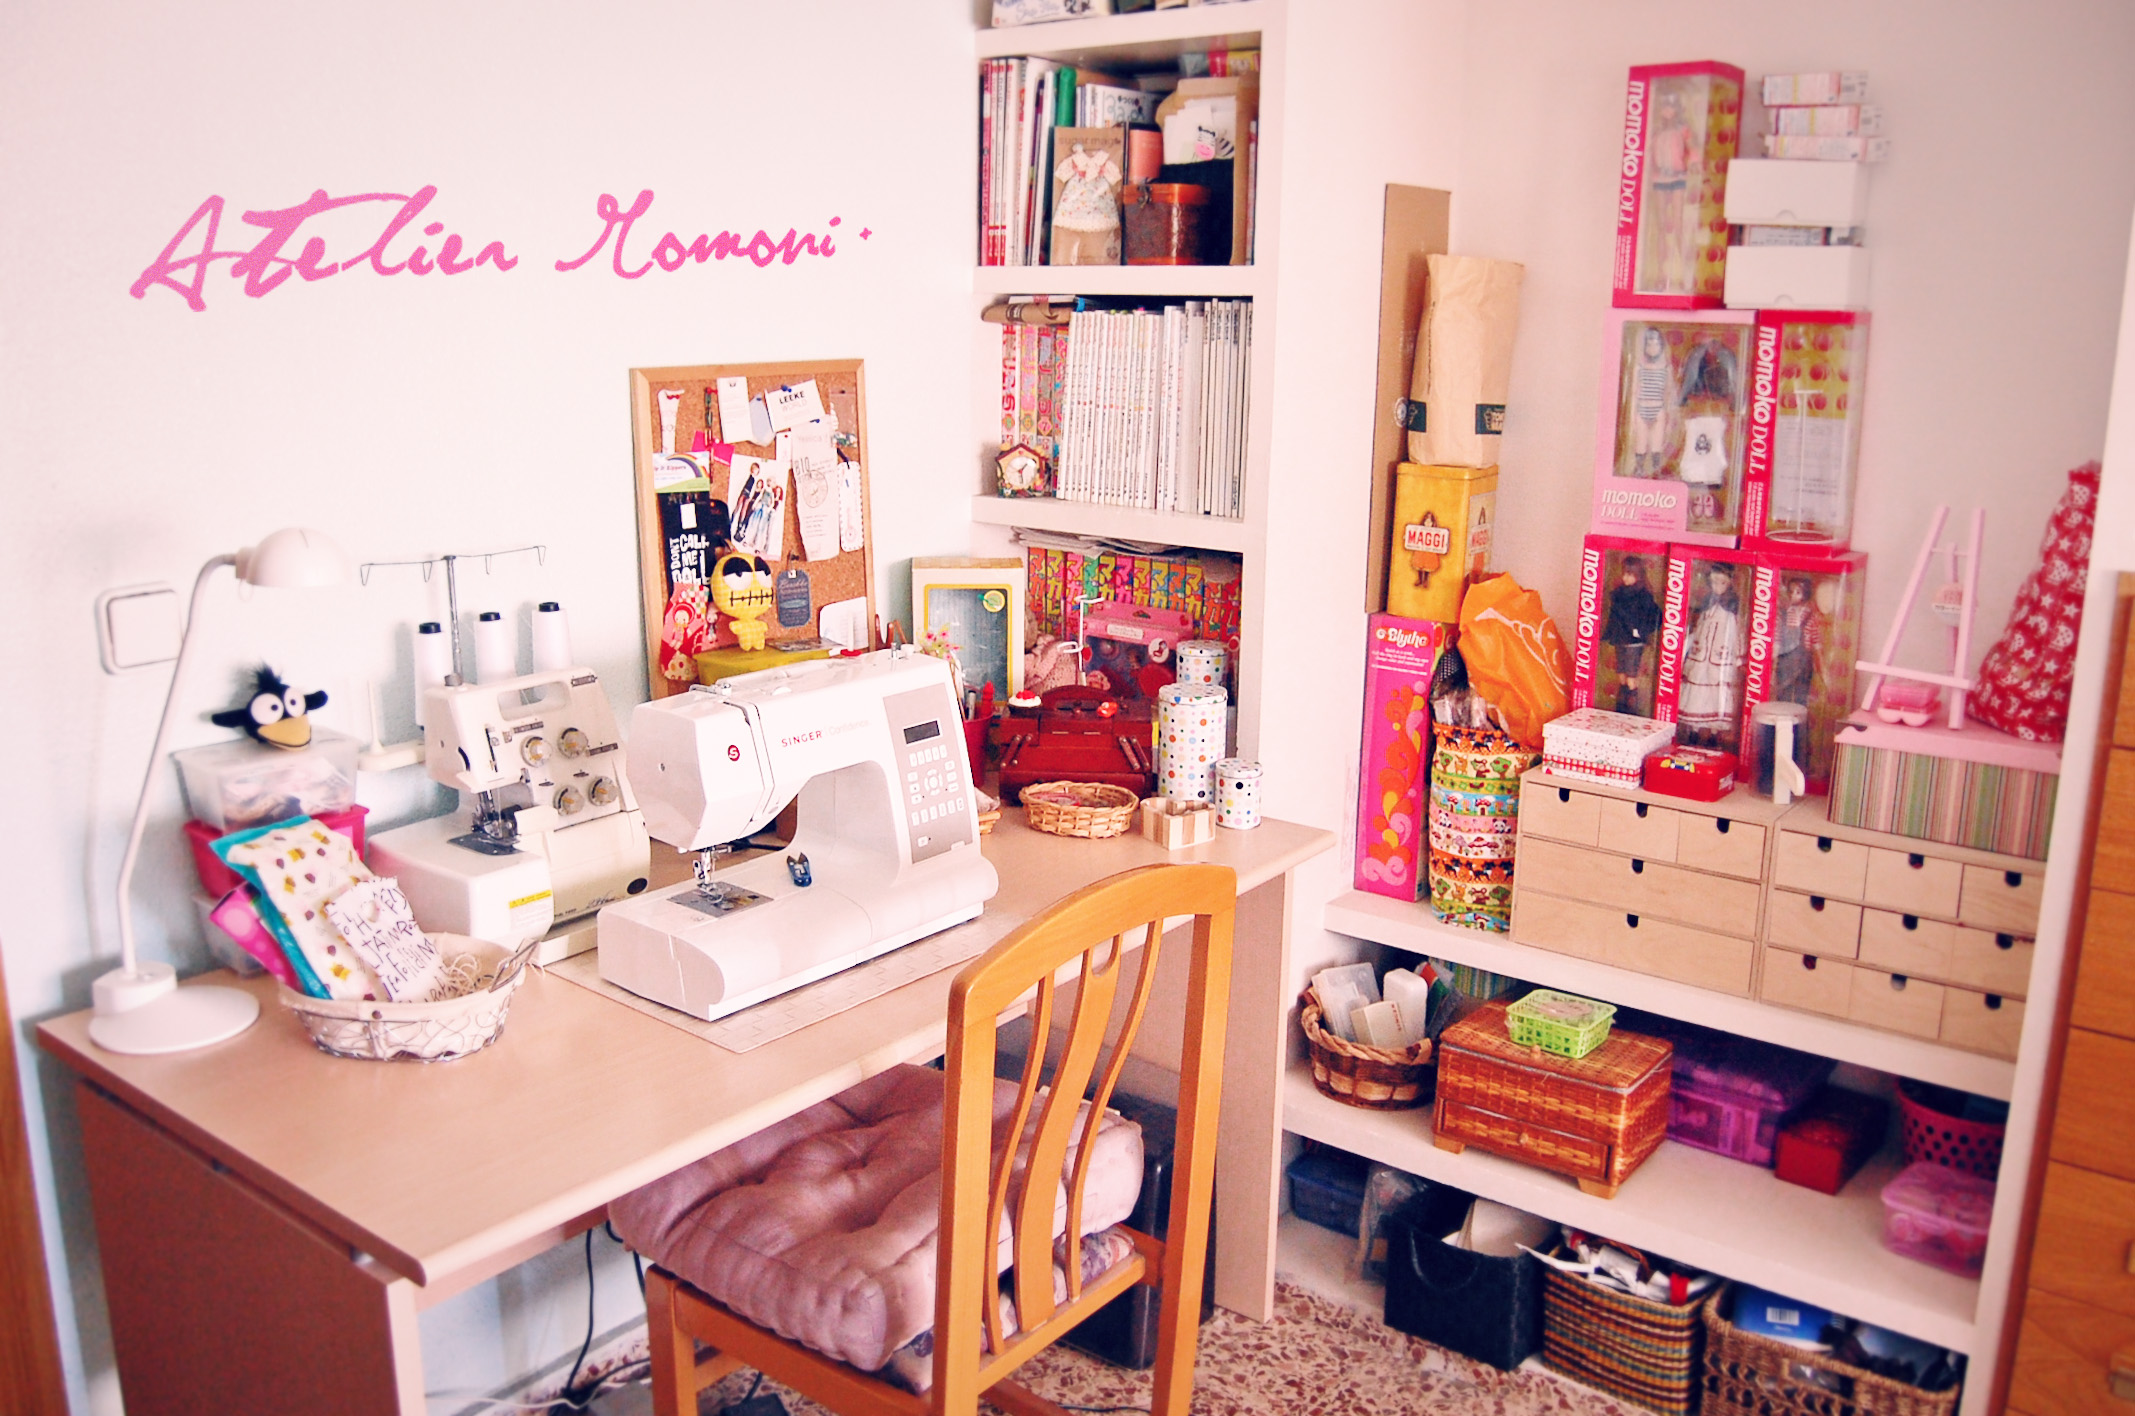 welcome to the atelier welcome to my little sewing corner flickr photo sharing. Black Bedroom Furniture Sets. Home Design Ideas